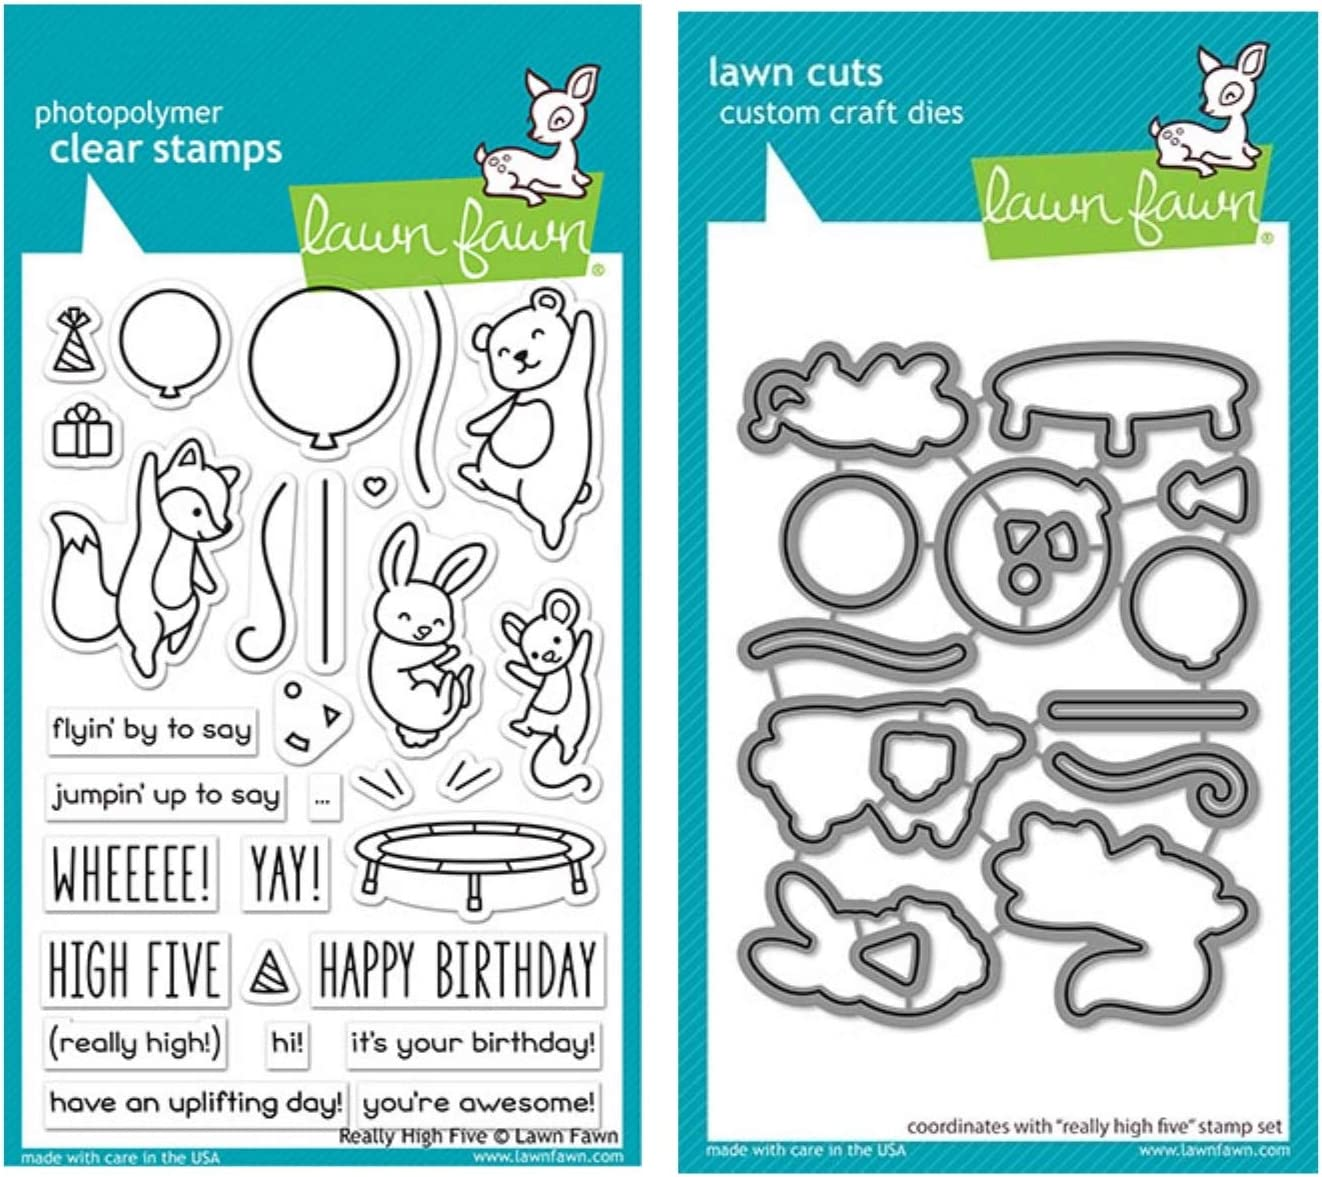 """Lawn Fawn Really High Five 4""""x6"""" Clear Stamp Set and Coordinating Custom Craft Die Set (LF2215, LF2216), Bundle of 2 Items"""